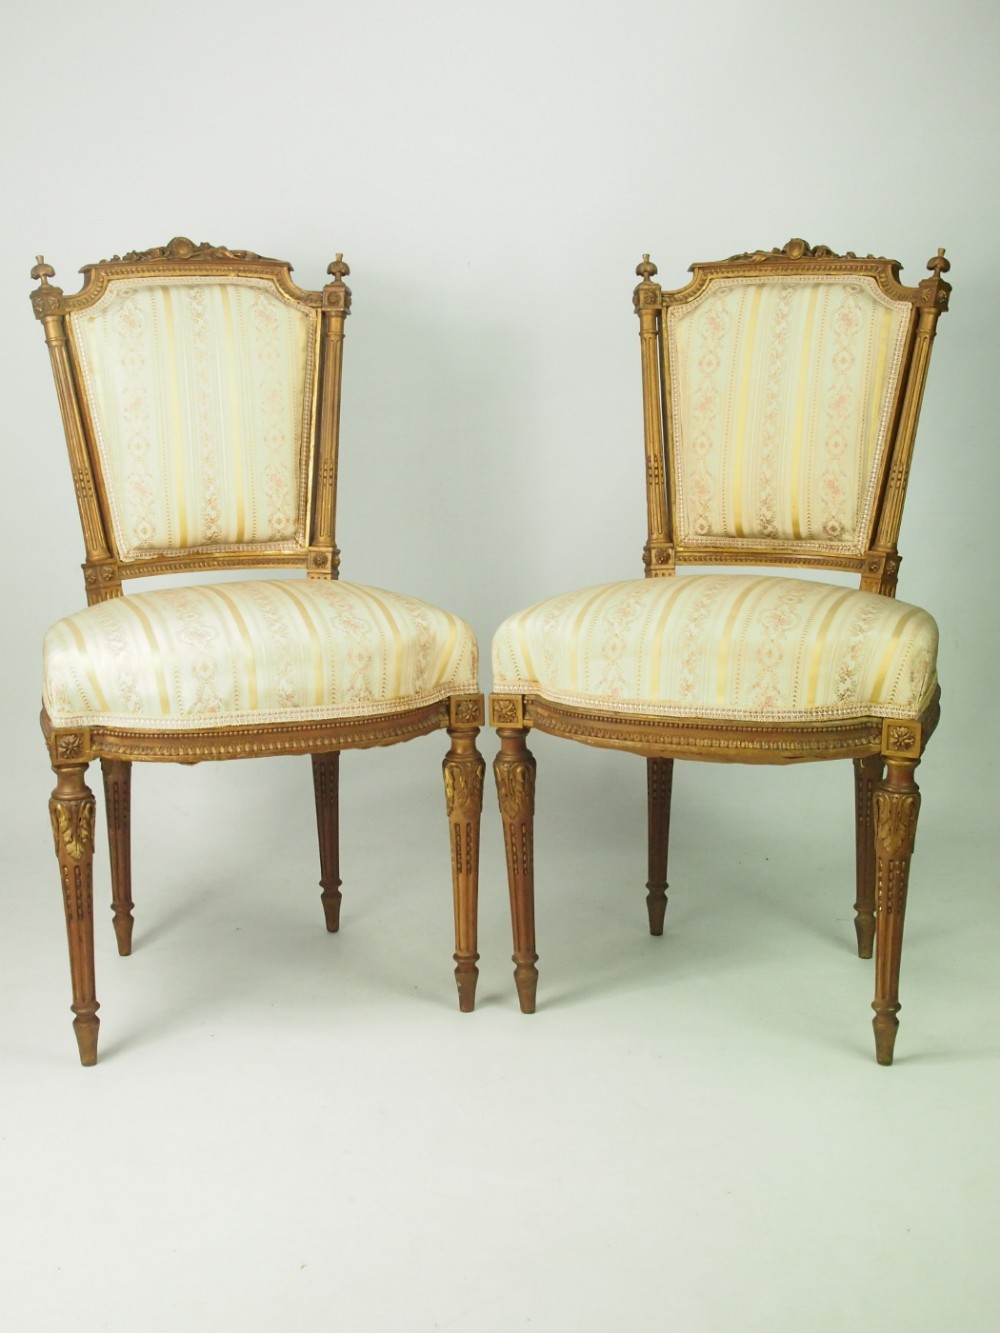 Pair Of Antique Giltwood French Side Chairs In Louis Xvi Style